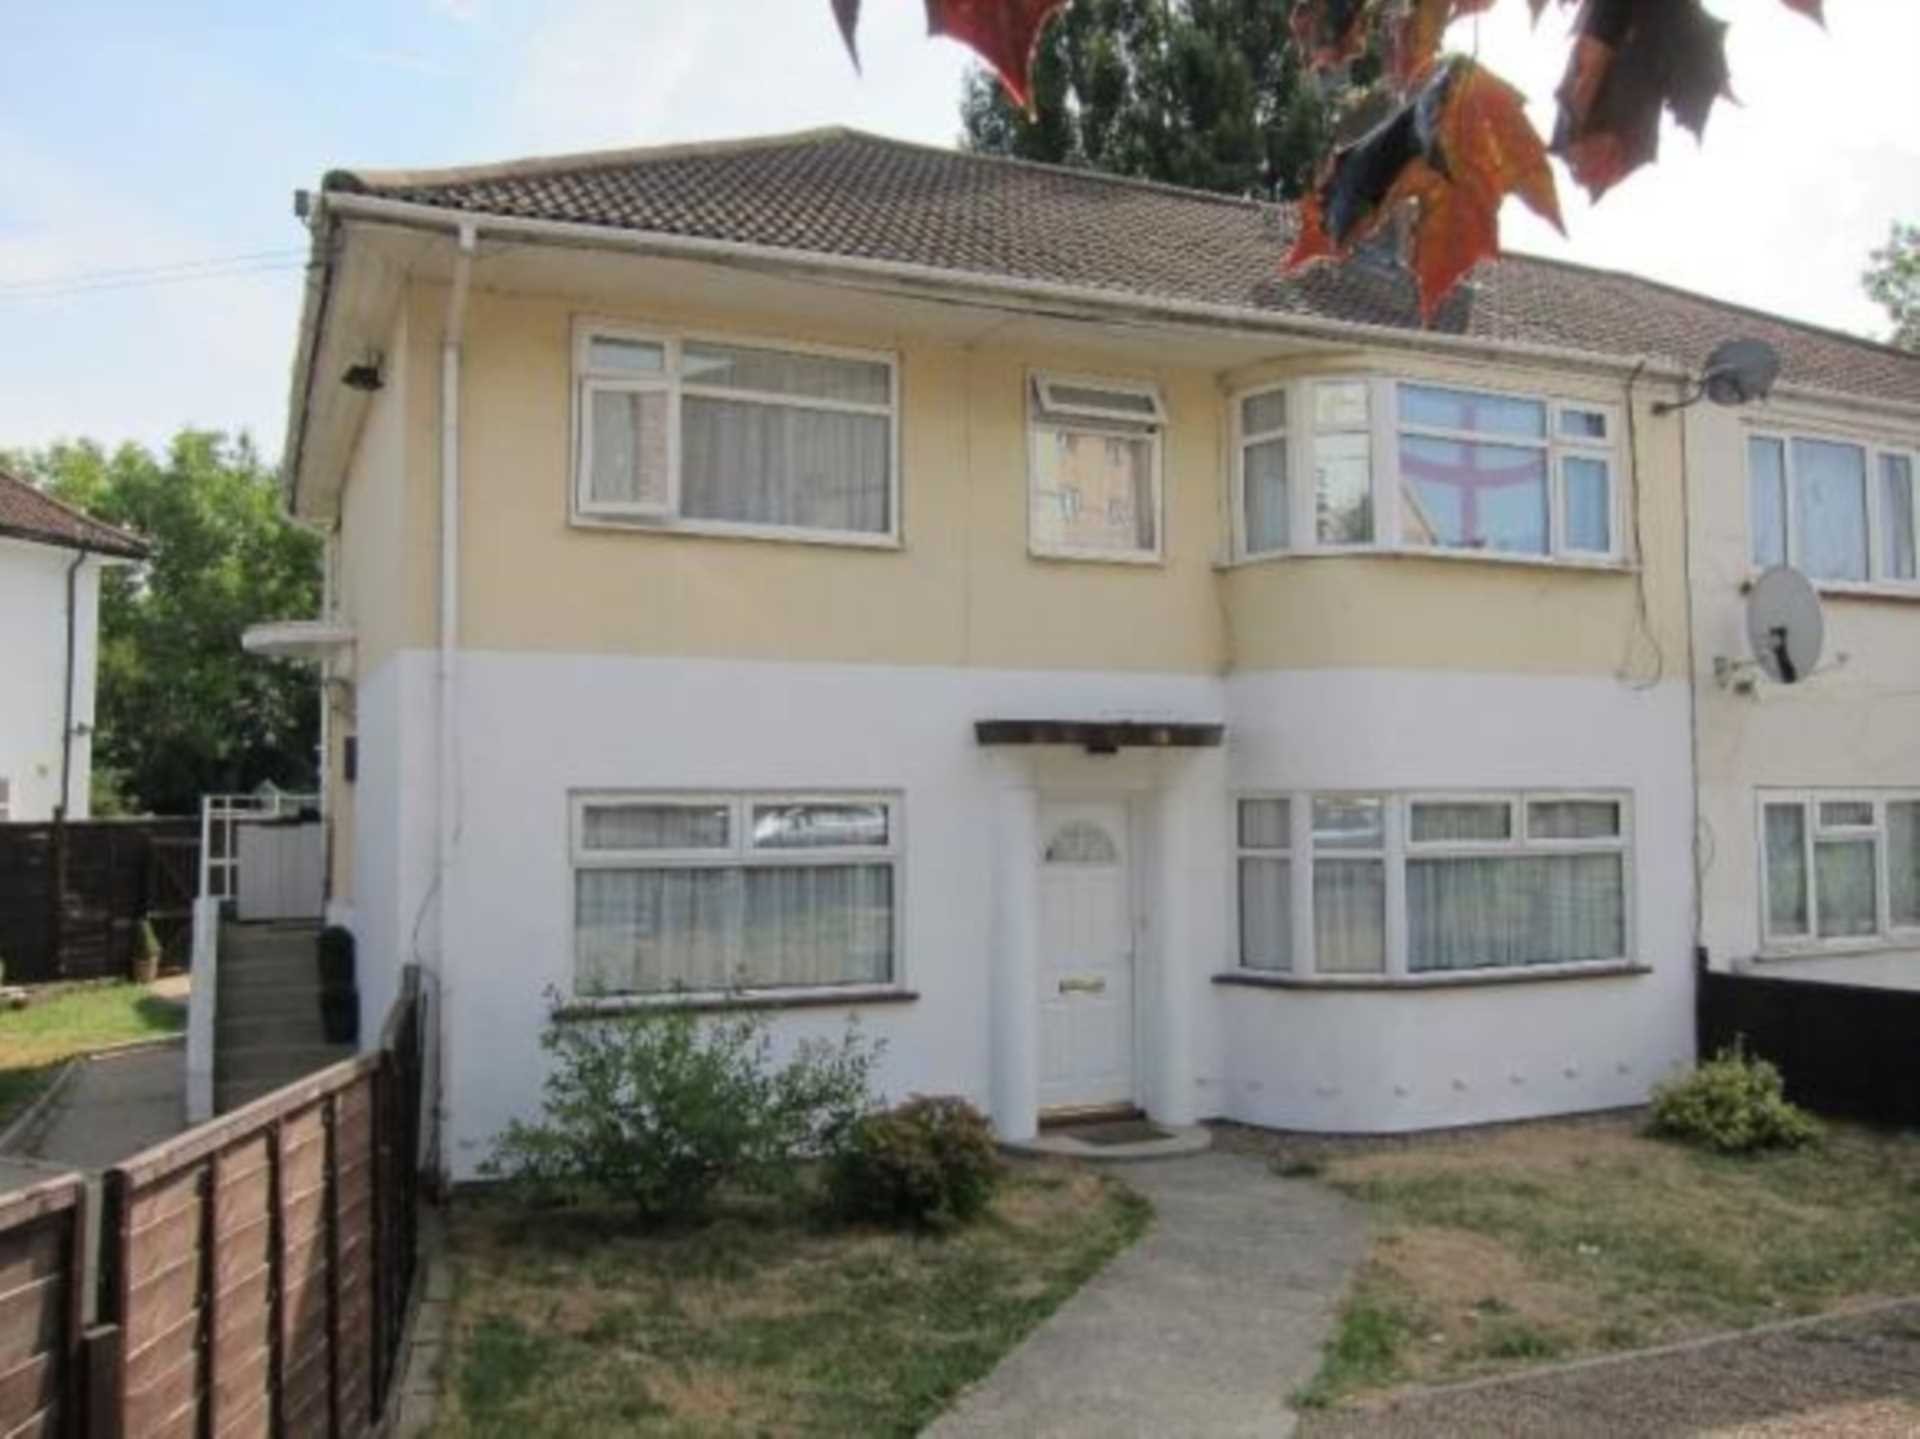 Clifton Rd, Perivale, Image 16